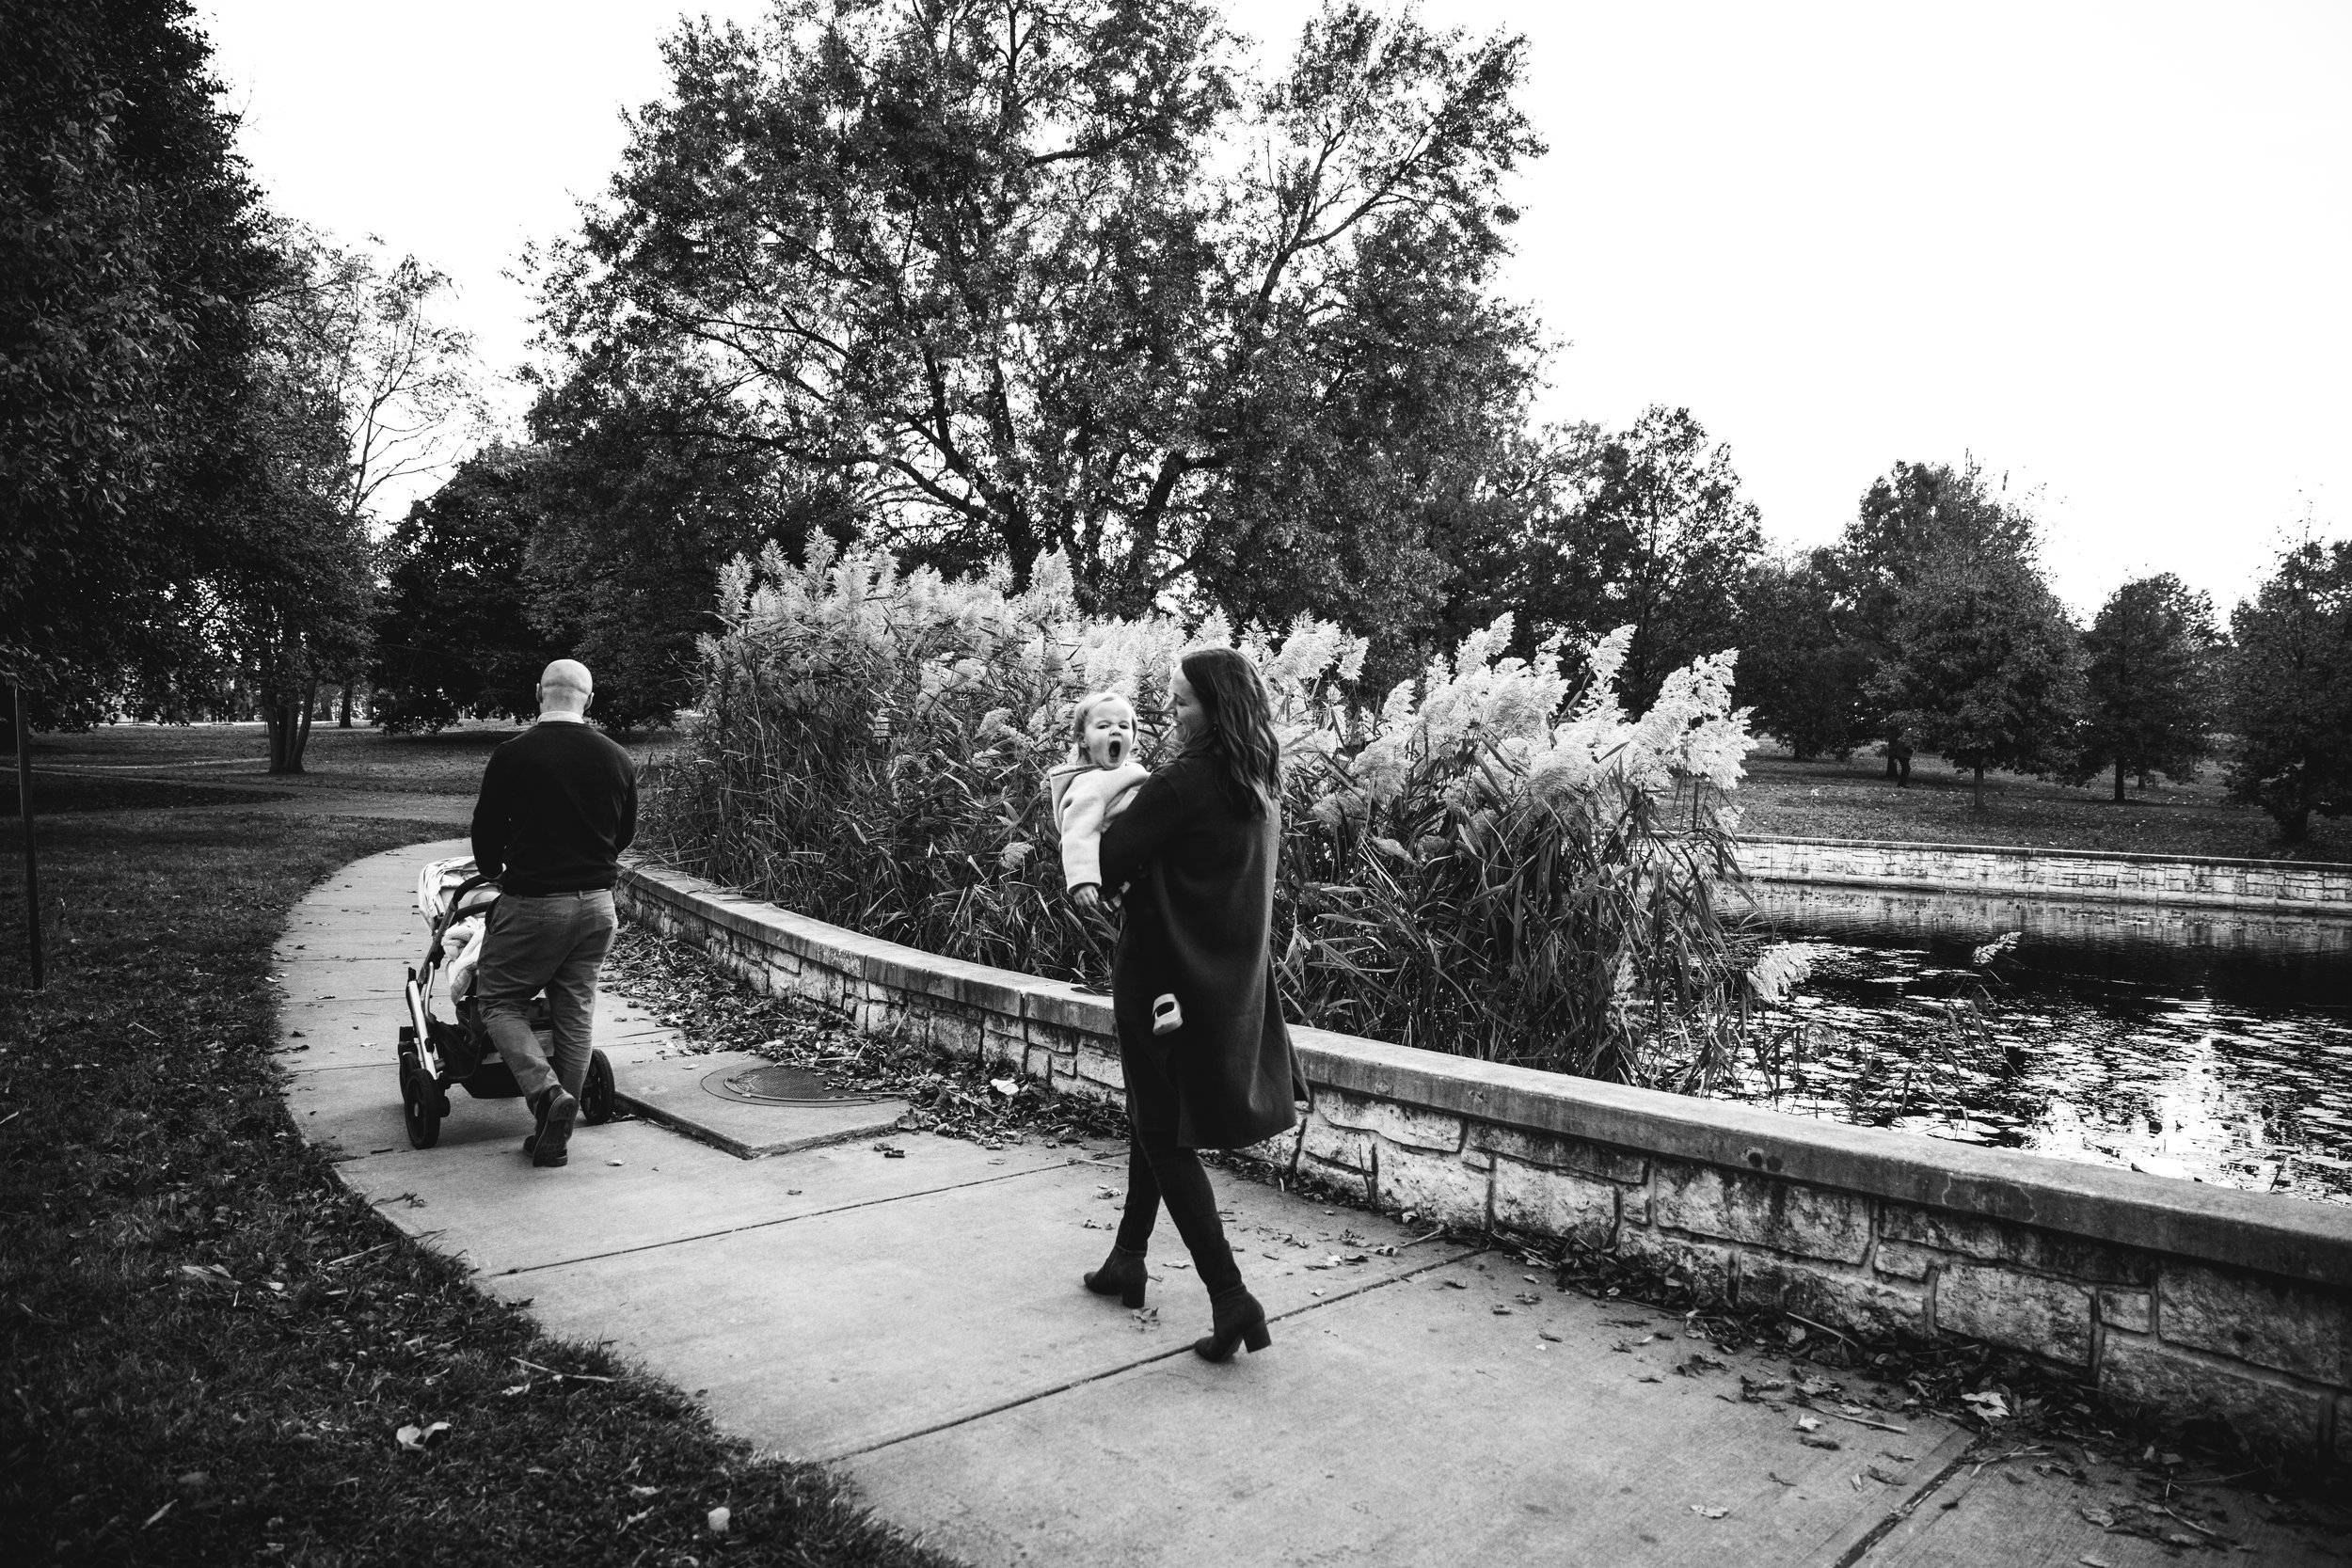 black and white photograph of family walking with stroller by park pond while mom holds daughter who yawns